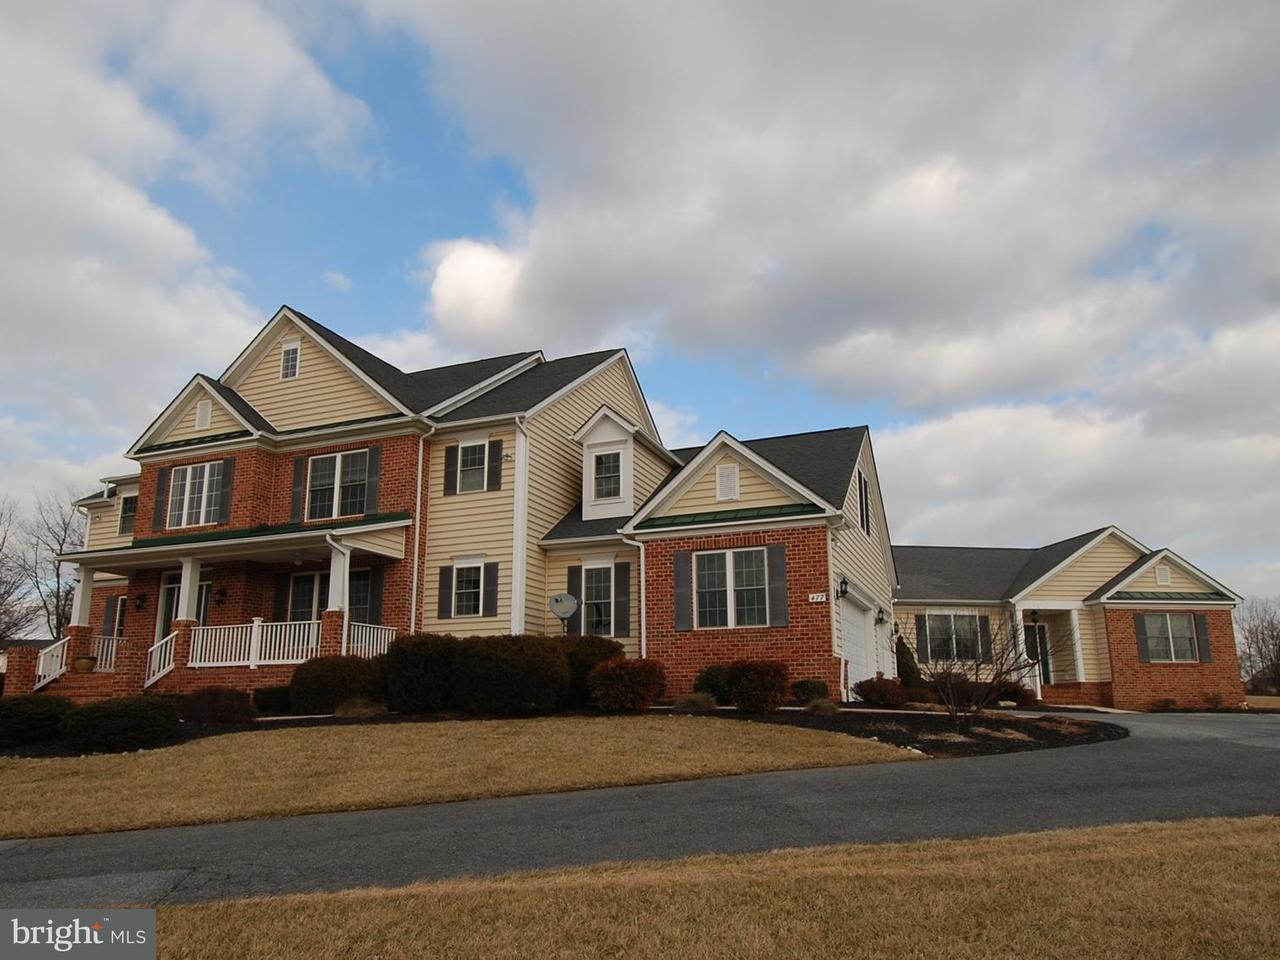 Single Family Home for Sale at 477 Calvins Drive 477 Calvins Drive Sykesville, Maryland 21784 United States